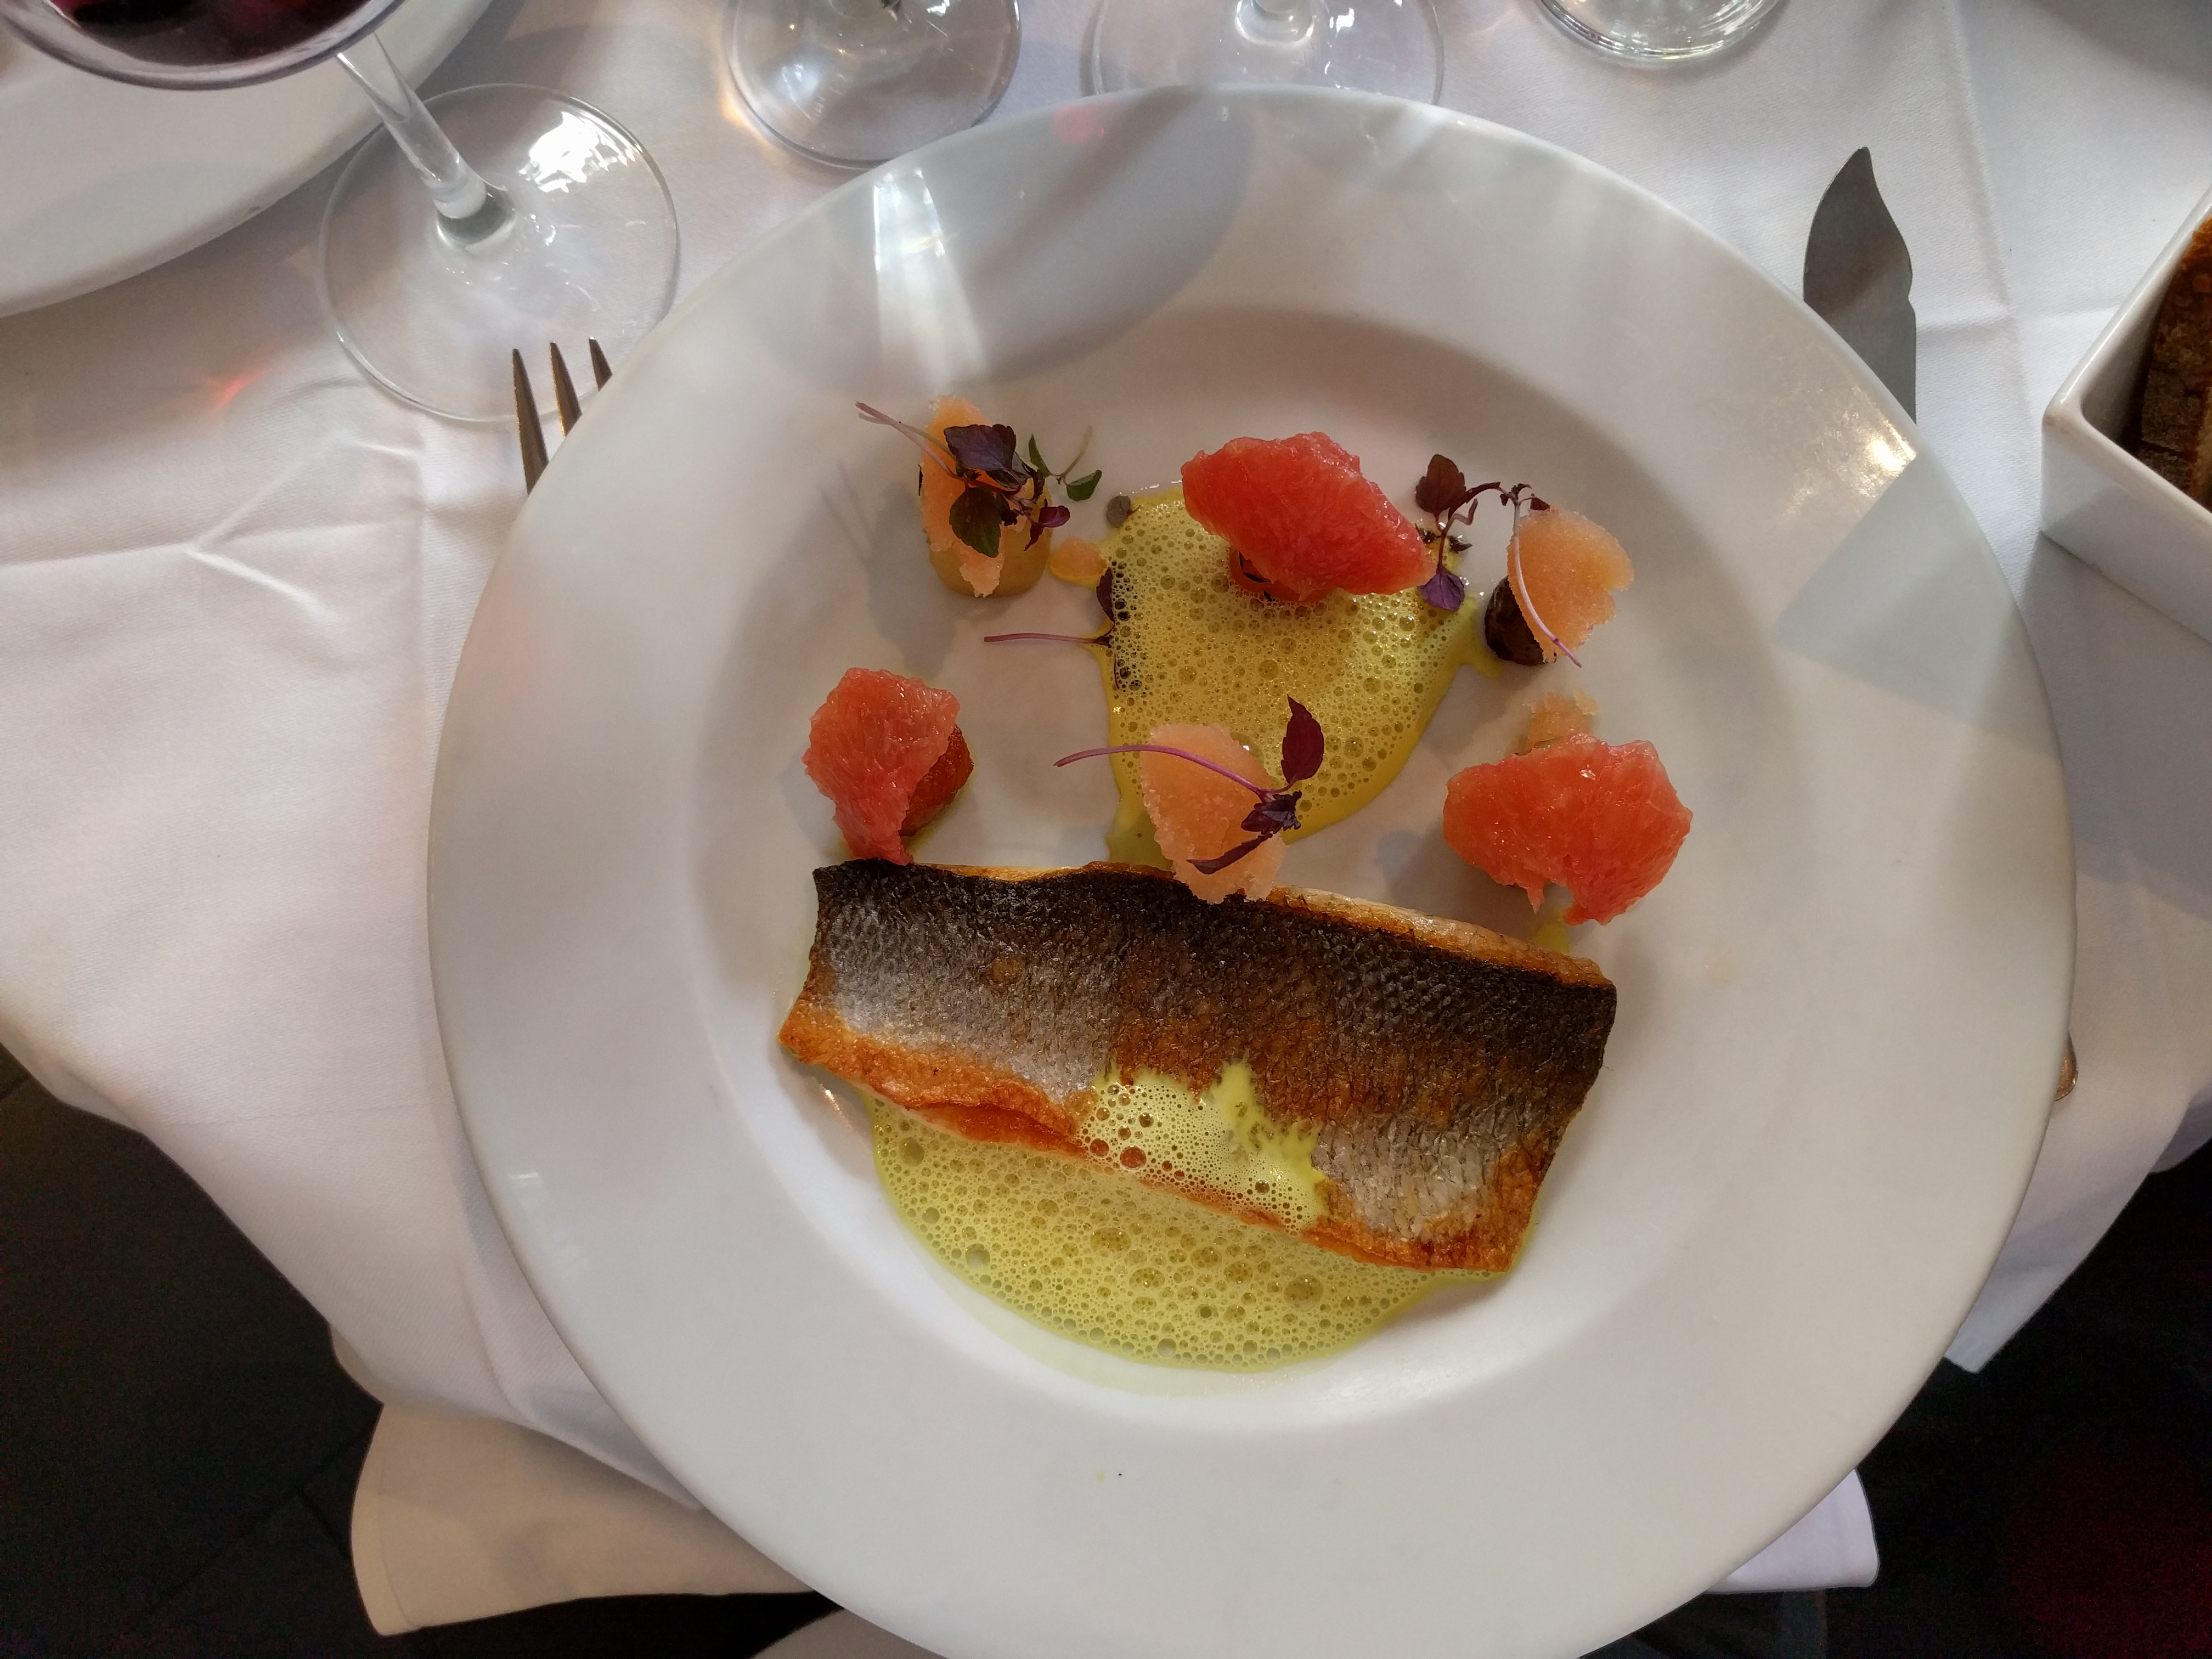 A main course of sea bass with carrots and grapefruit